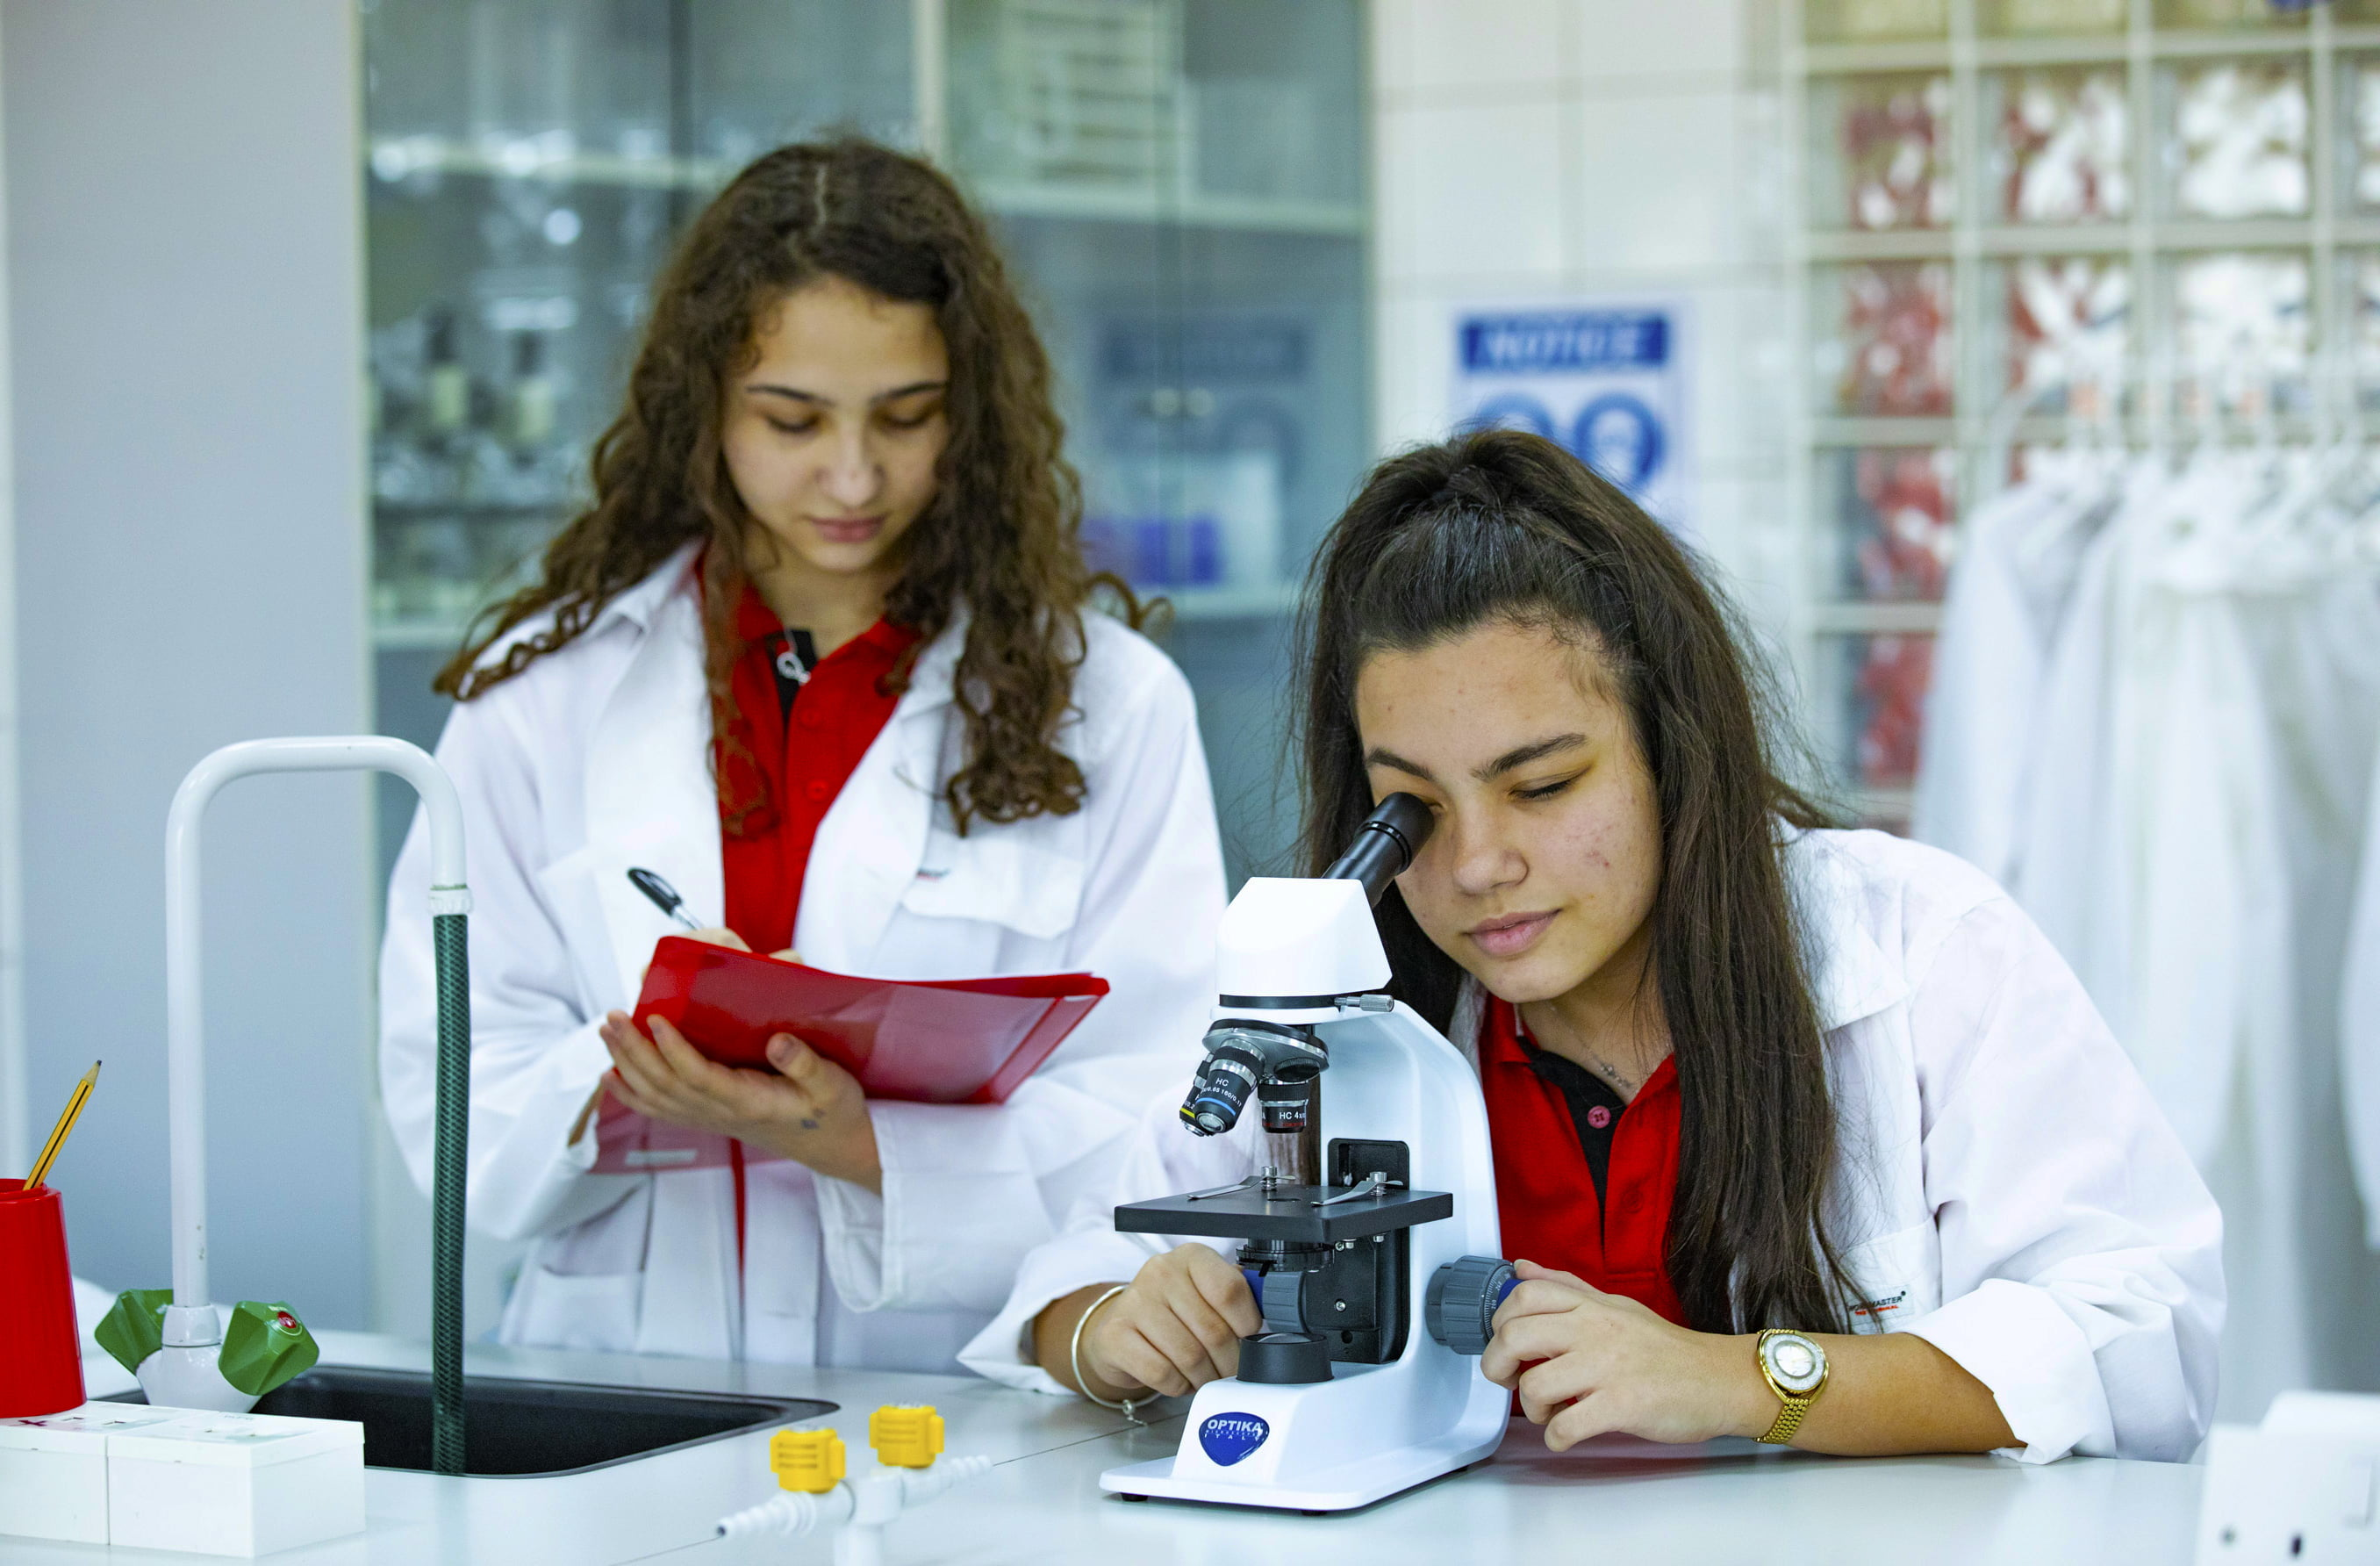 Students engaged in STEM and Science at Ontario International Canadian School in Dubai using a microscope in the dedicated labs facilities